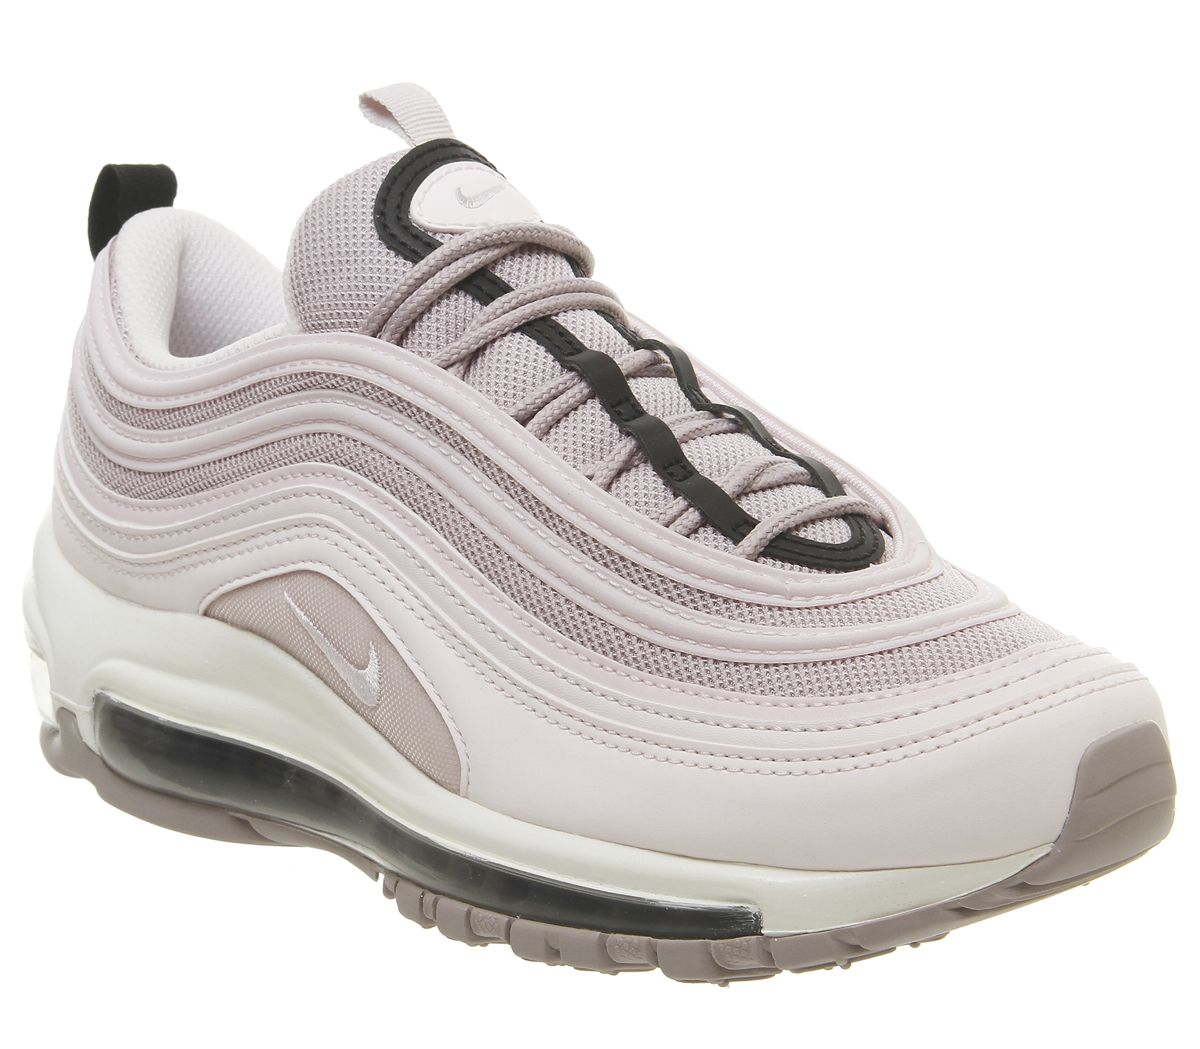 05a63b247e784 Nike Air Max 97 Trainers Pale Pink Violet Ash Black Summit White ...